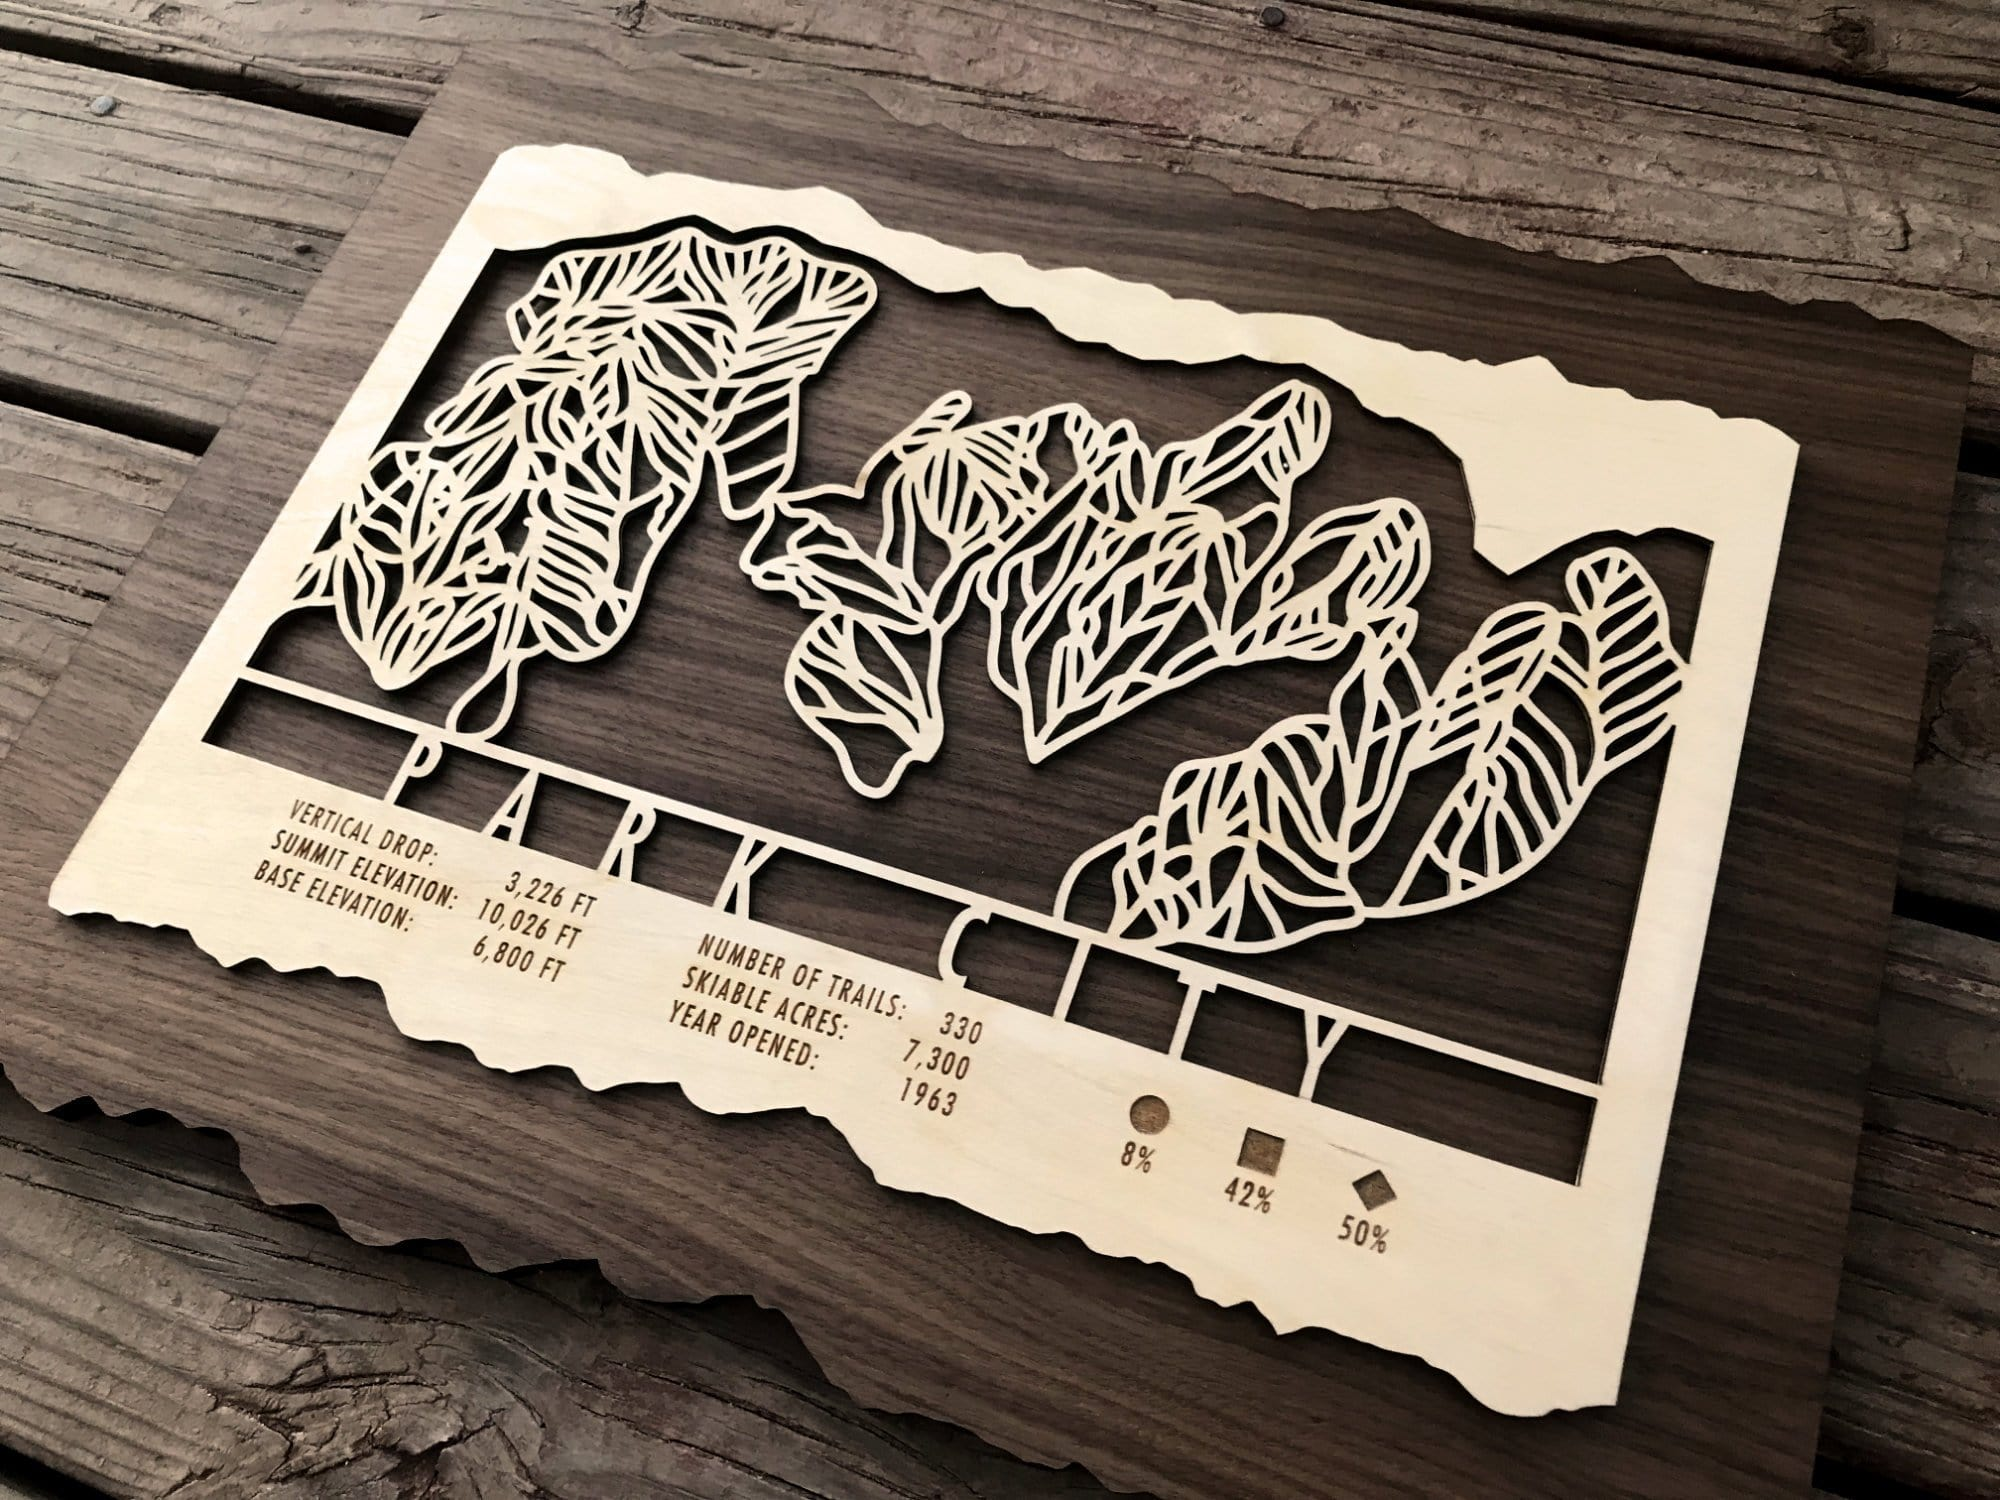 Park City Ski Decor Trail Map Art - MountainCut